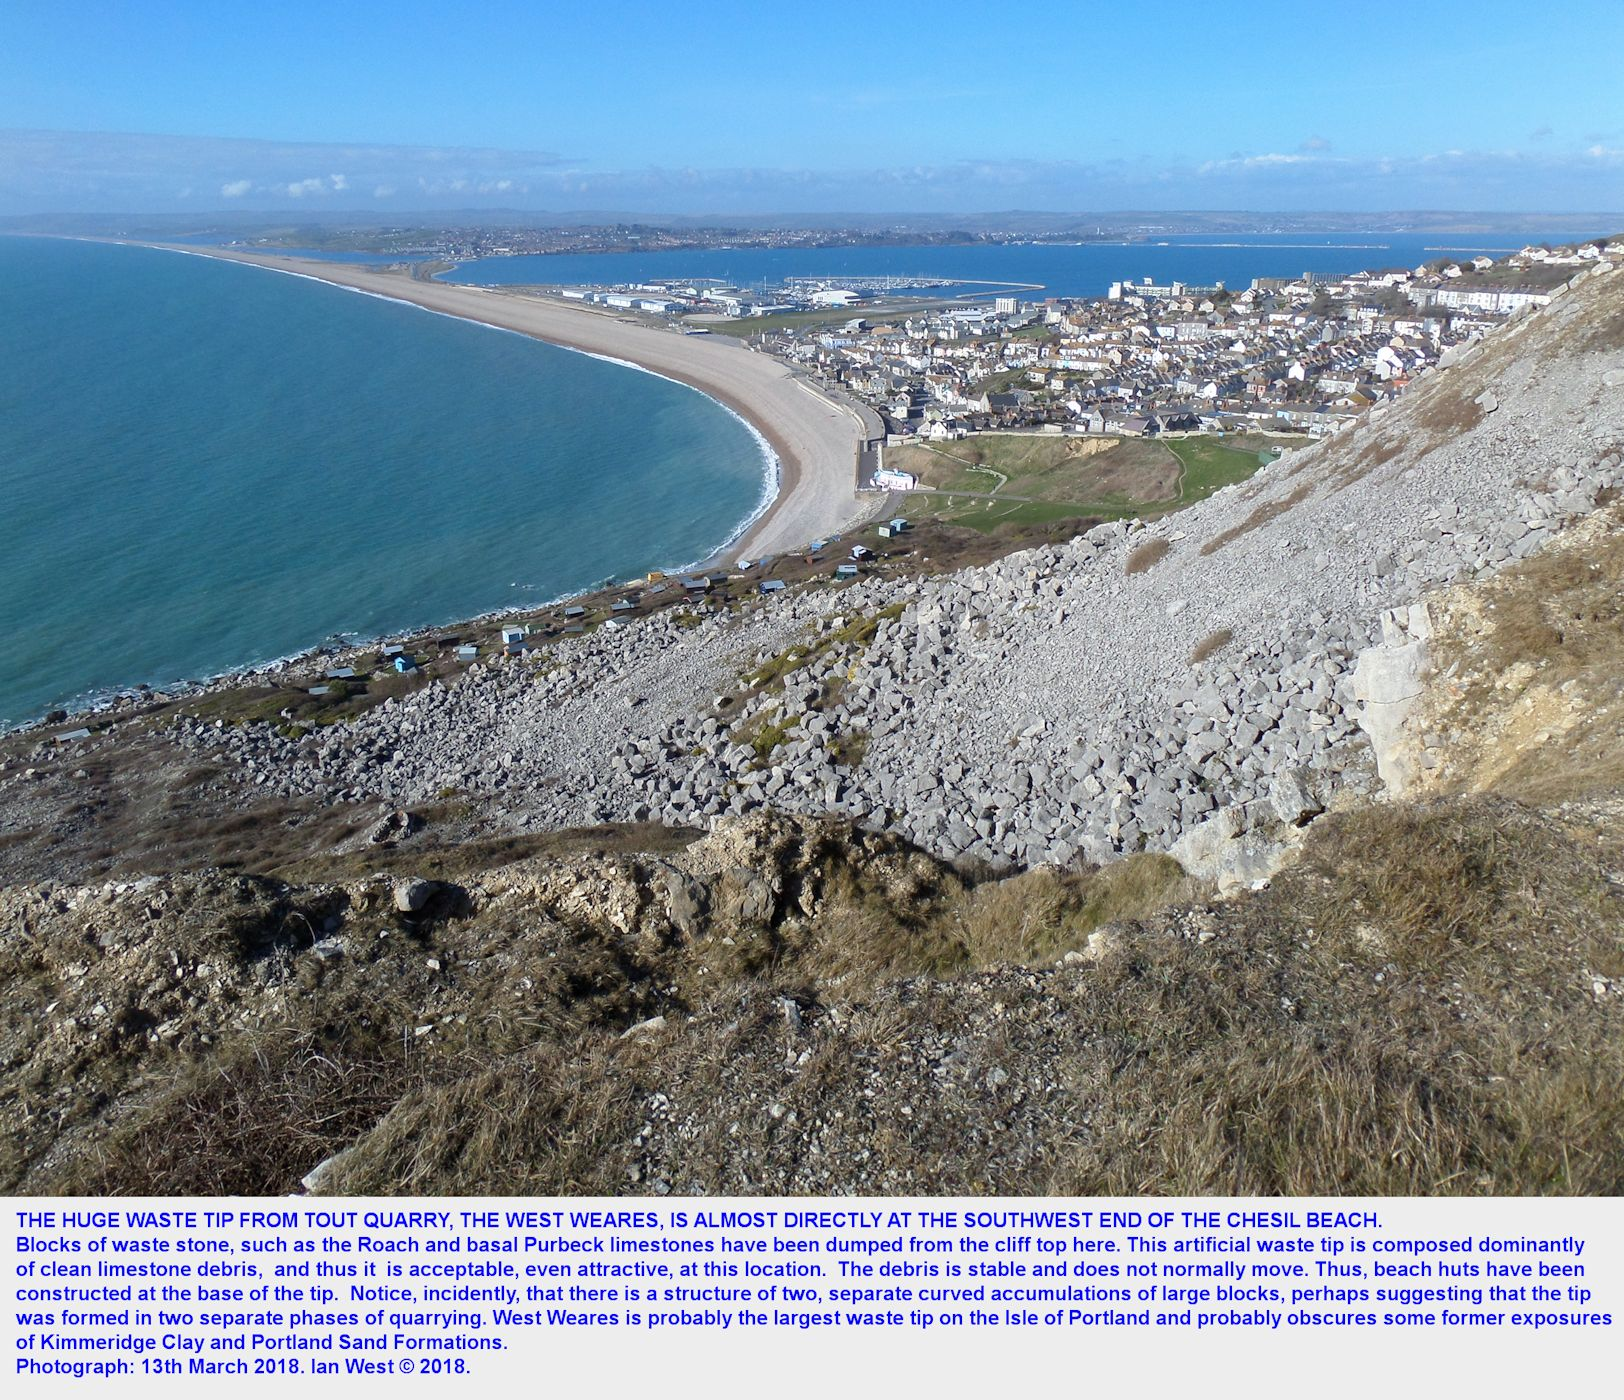 The waste tip of quarry debris, largely basal, Purbeck stone, at West Weares, Isle of Portland